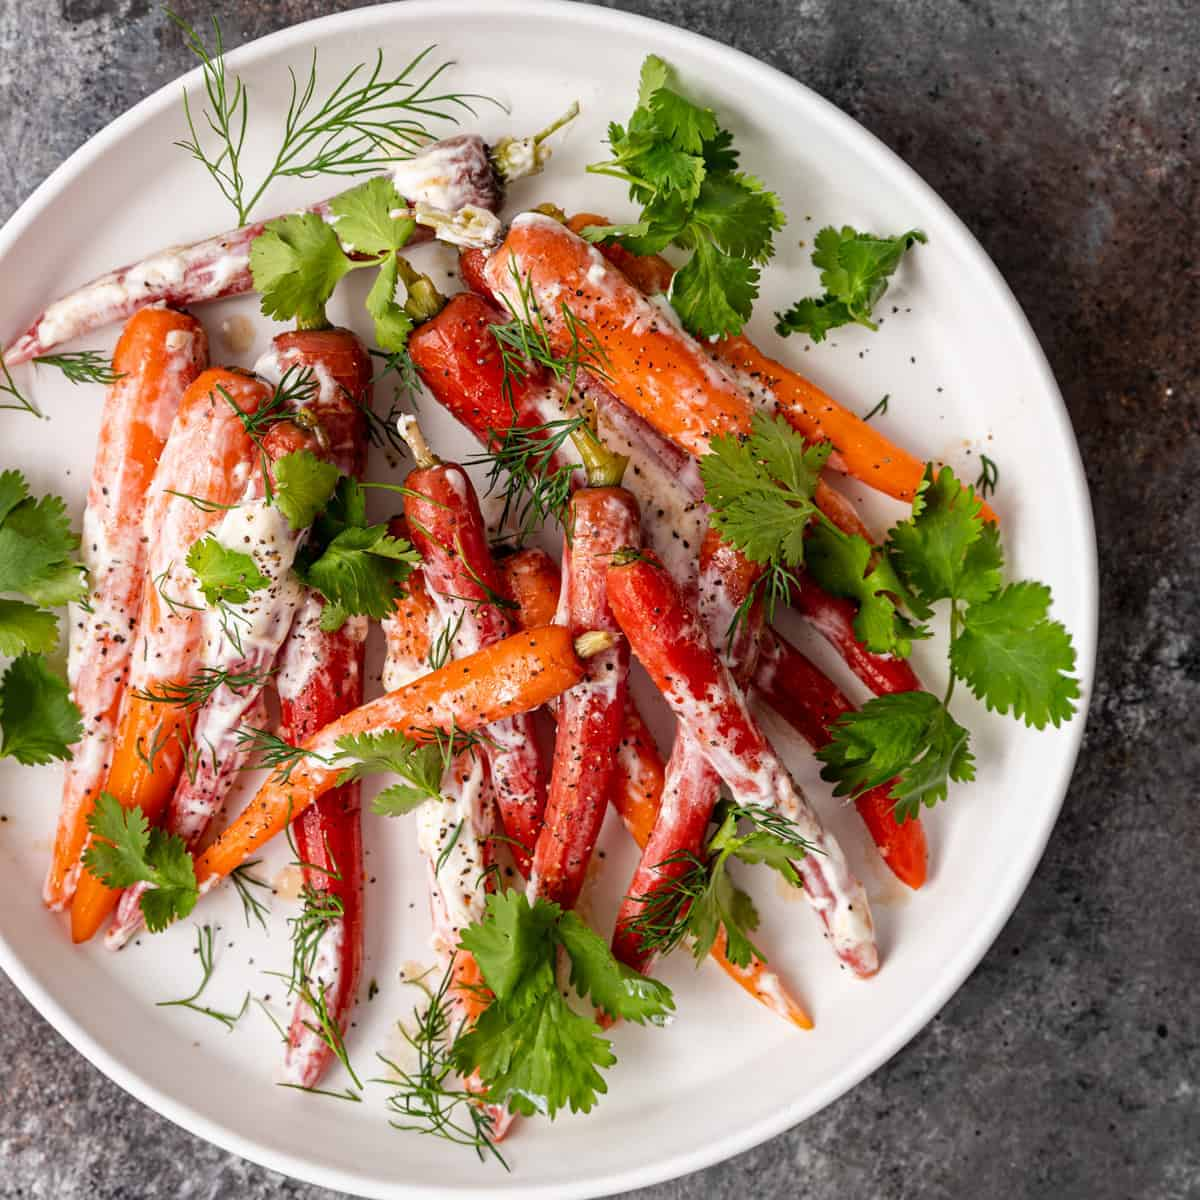 overhead: round white plate of Moroccan carrots with yogurt sauce and garnish of fresh dill and cilantro